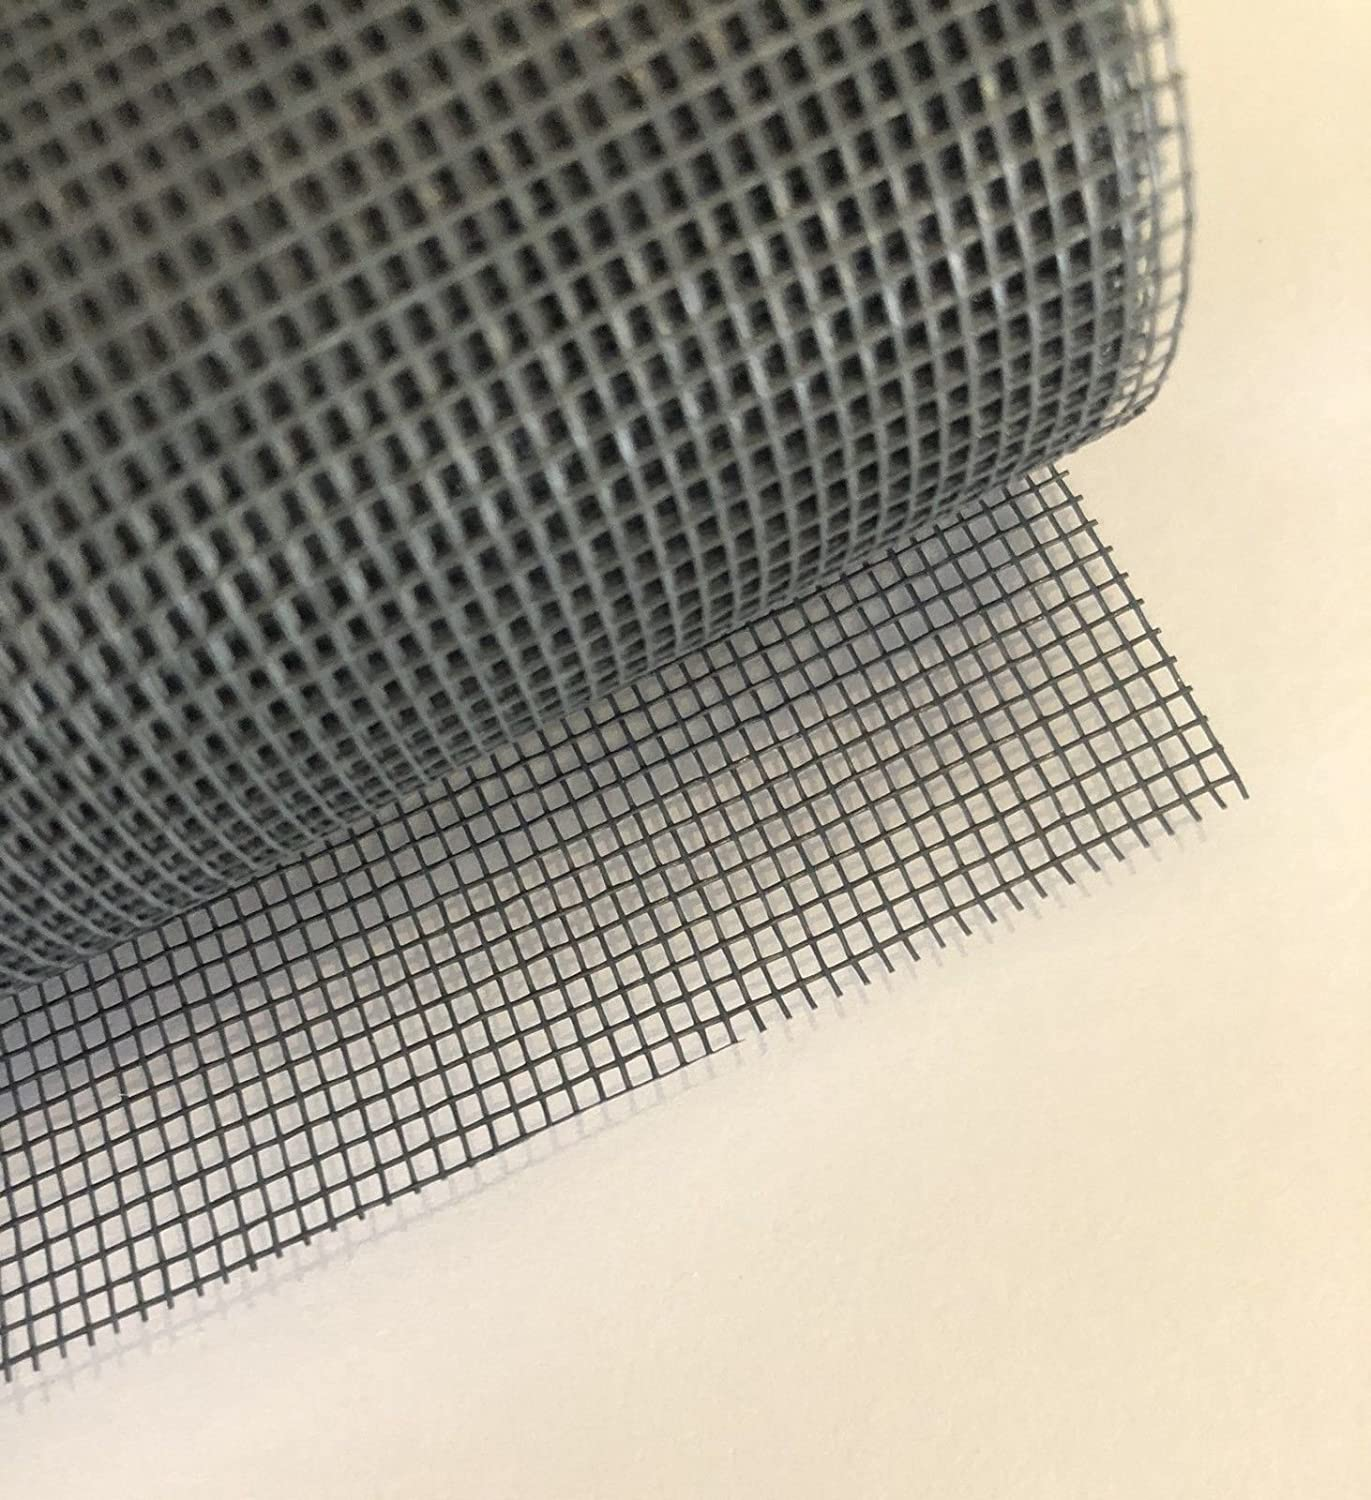 Quality Grey Fibreglass Screen Mesh Net Insect Fly Bug Mosquito